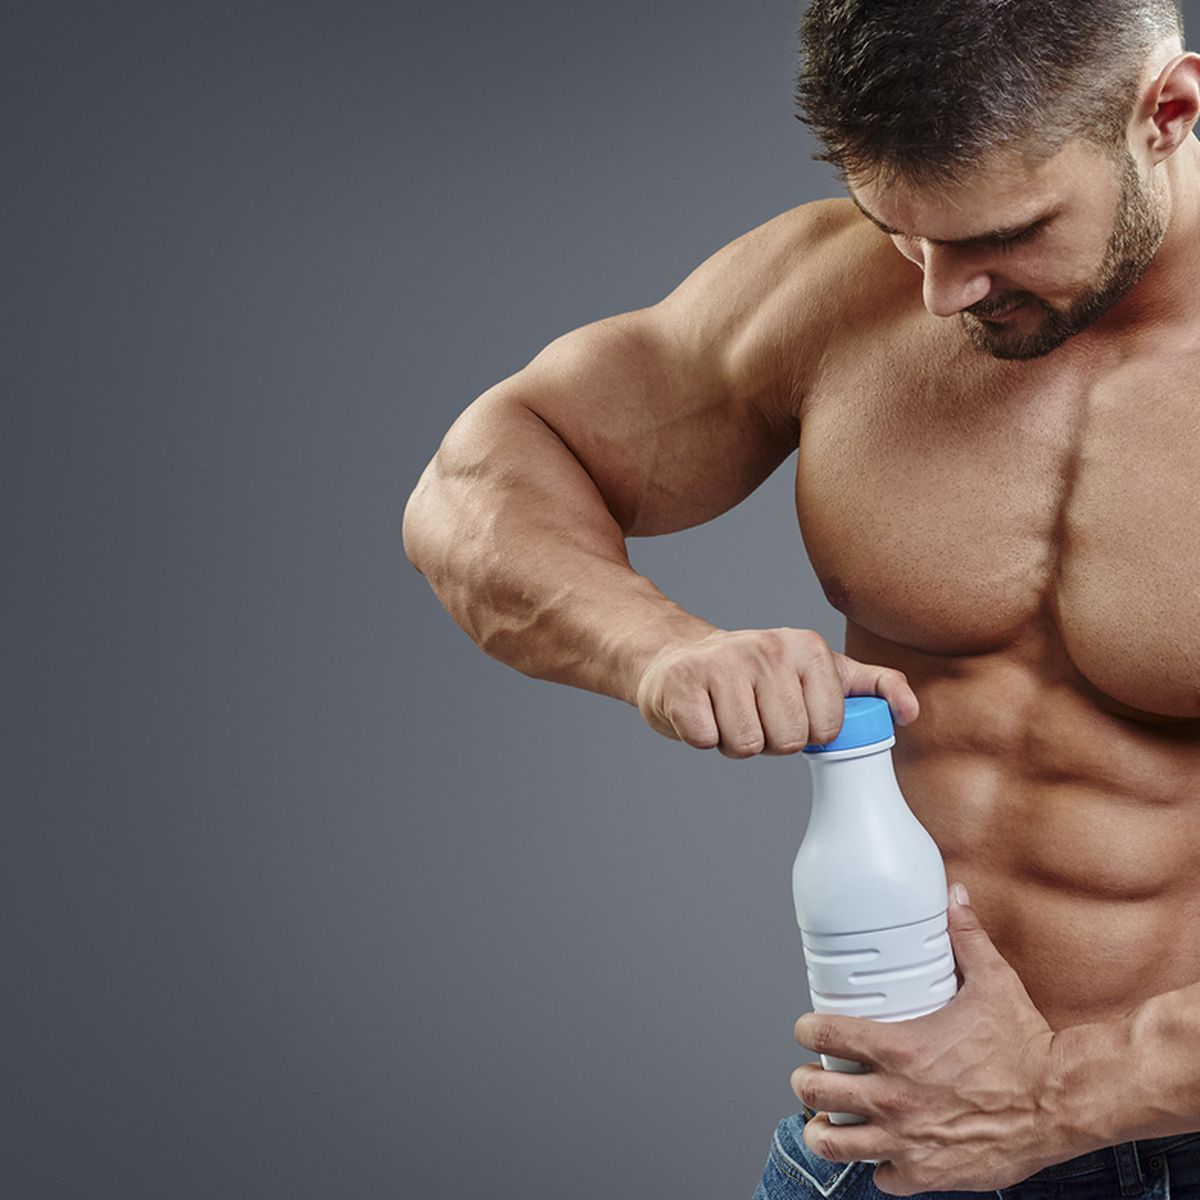 Four litres of milk a day: Does the internet's classic muscle-building tip  actually work? - 9Coach